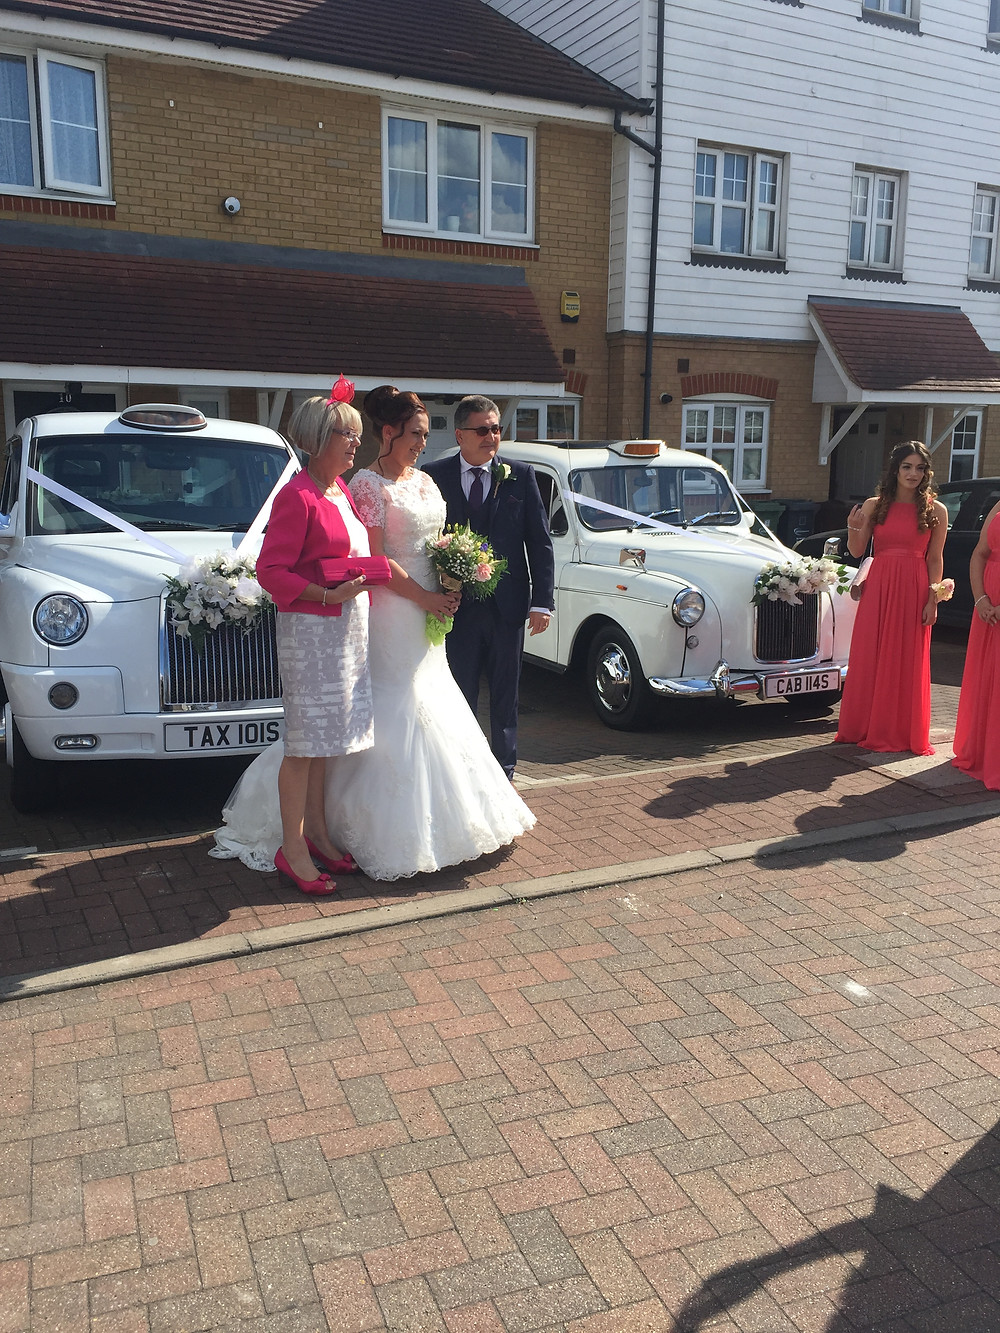 Wedding at Langton's, Hornchurch – wedding car hire